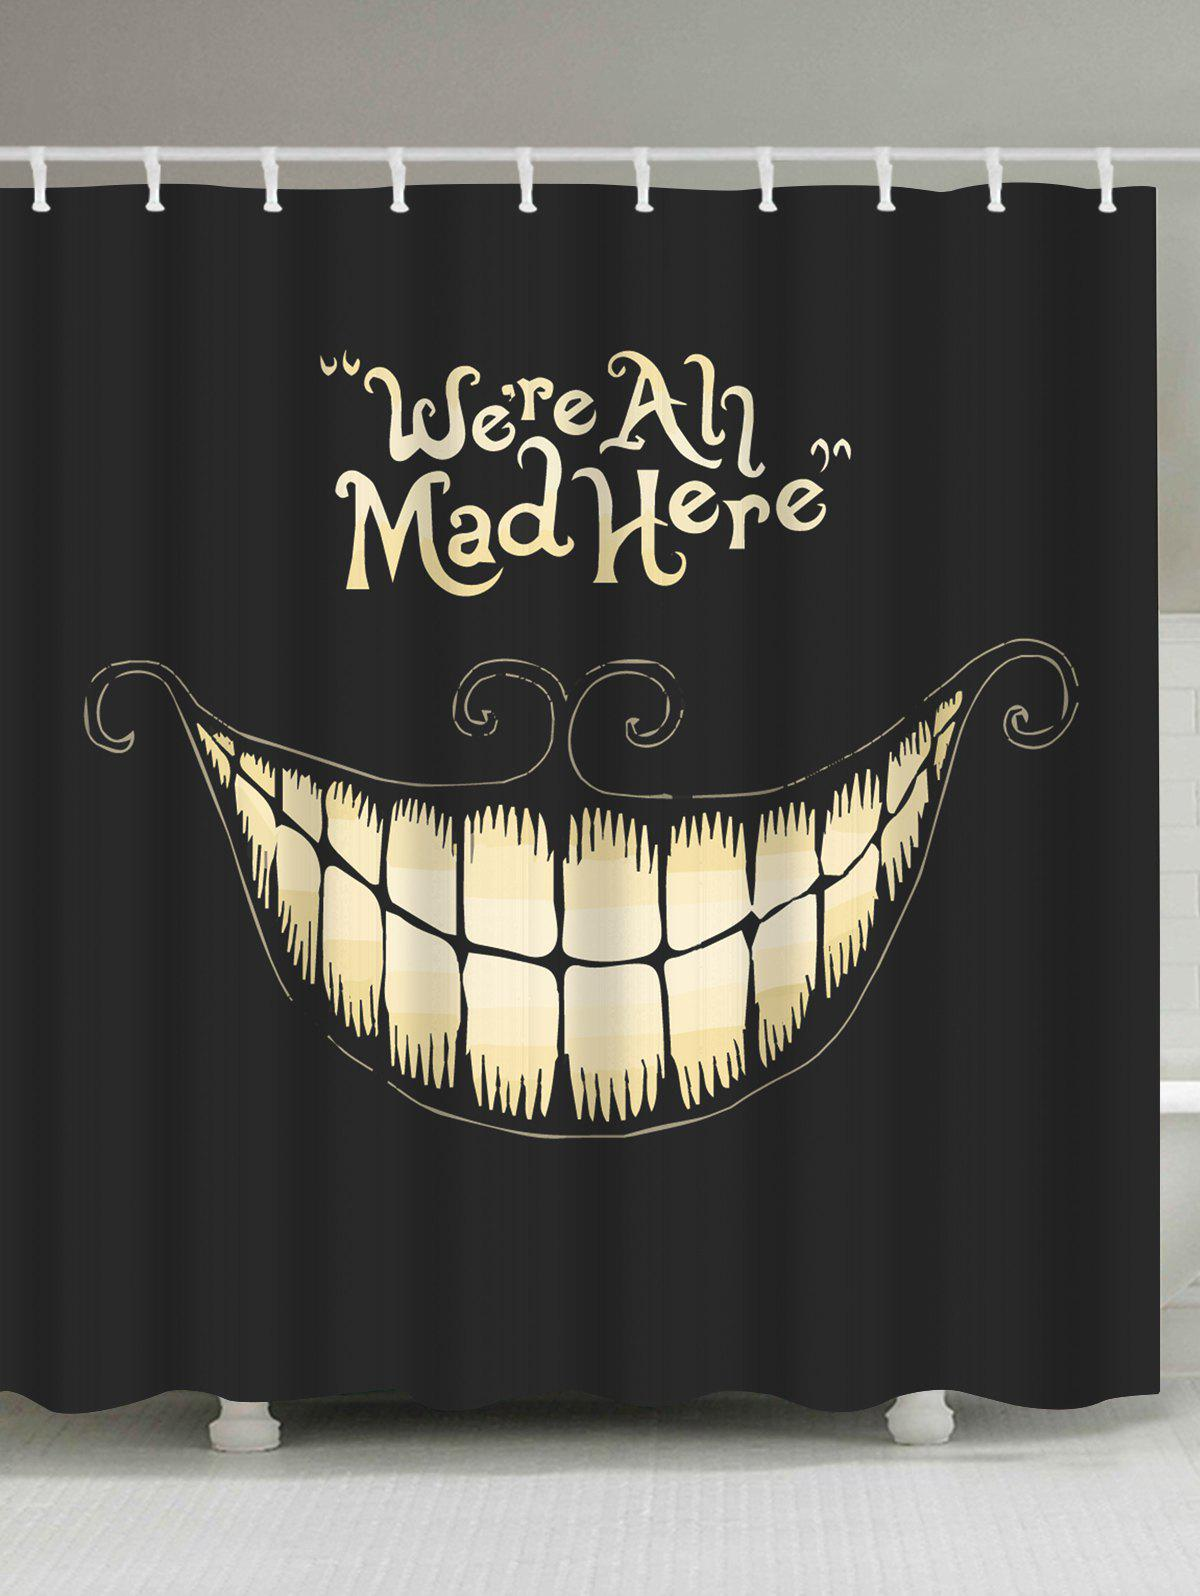 Funny Smiling Fabric Halloween Decor Shower CurtainHOME<br><br>Size: W59 INCH * L71 INCH; Color: BLACK; Products Type: Shower Curtains; Materials: Polyester; Pattern: Print; Style: Festival; Number of Hook Holes: W59 inch*L71 inch: 10; W71 inch*L71 inch: 12; W71 inch*L79 inch: 12; Package Contents: 1 x Shower Curtain 1 x Hooks (Set);